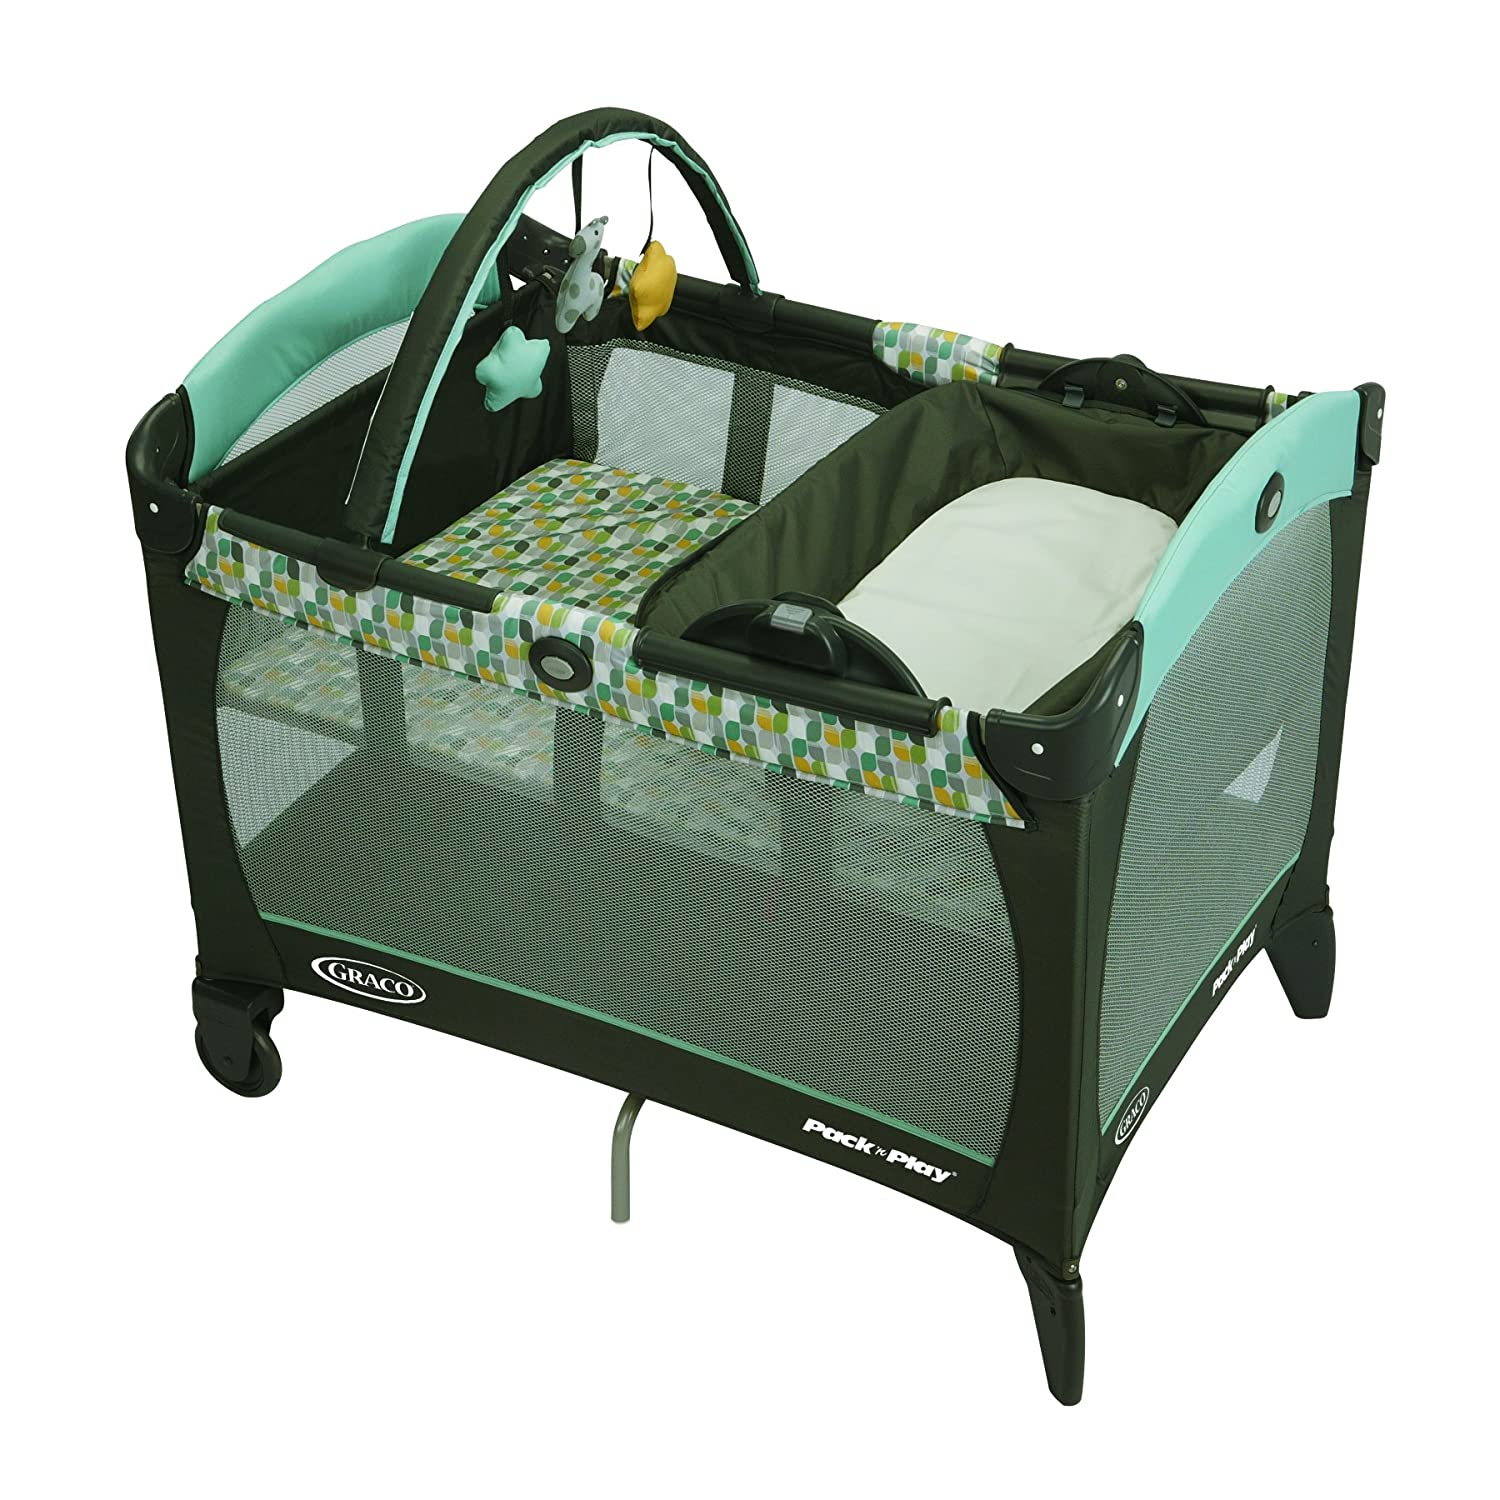 Graco Pack n' Play Playard with Reversible Napper and Changer, Meadow Menagerie 1811006